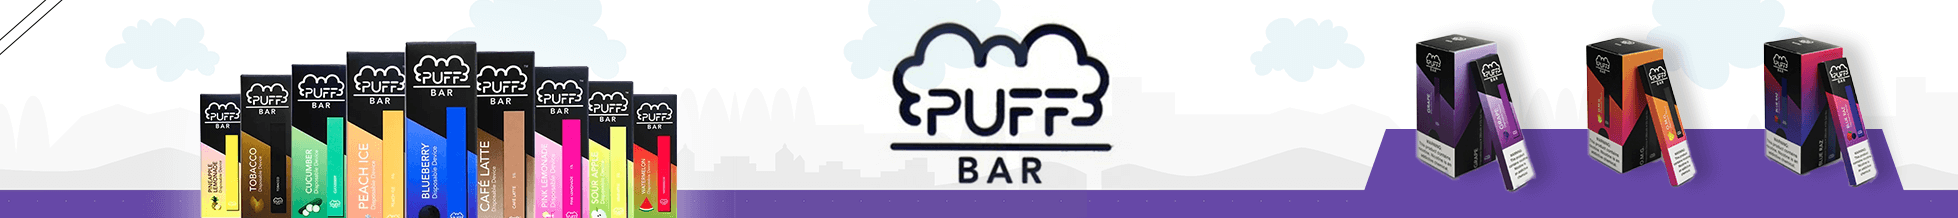 puff-bar-category-banner.png